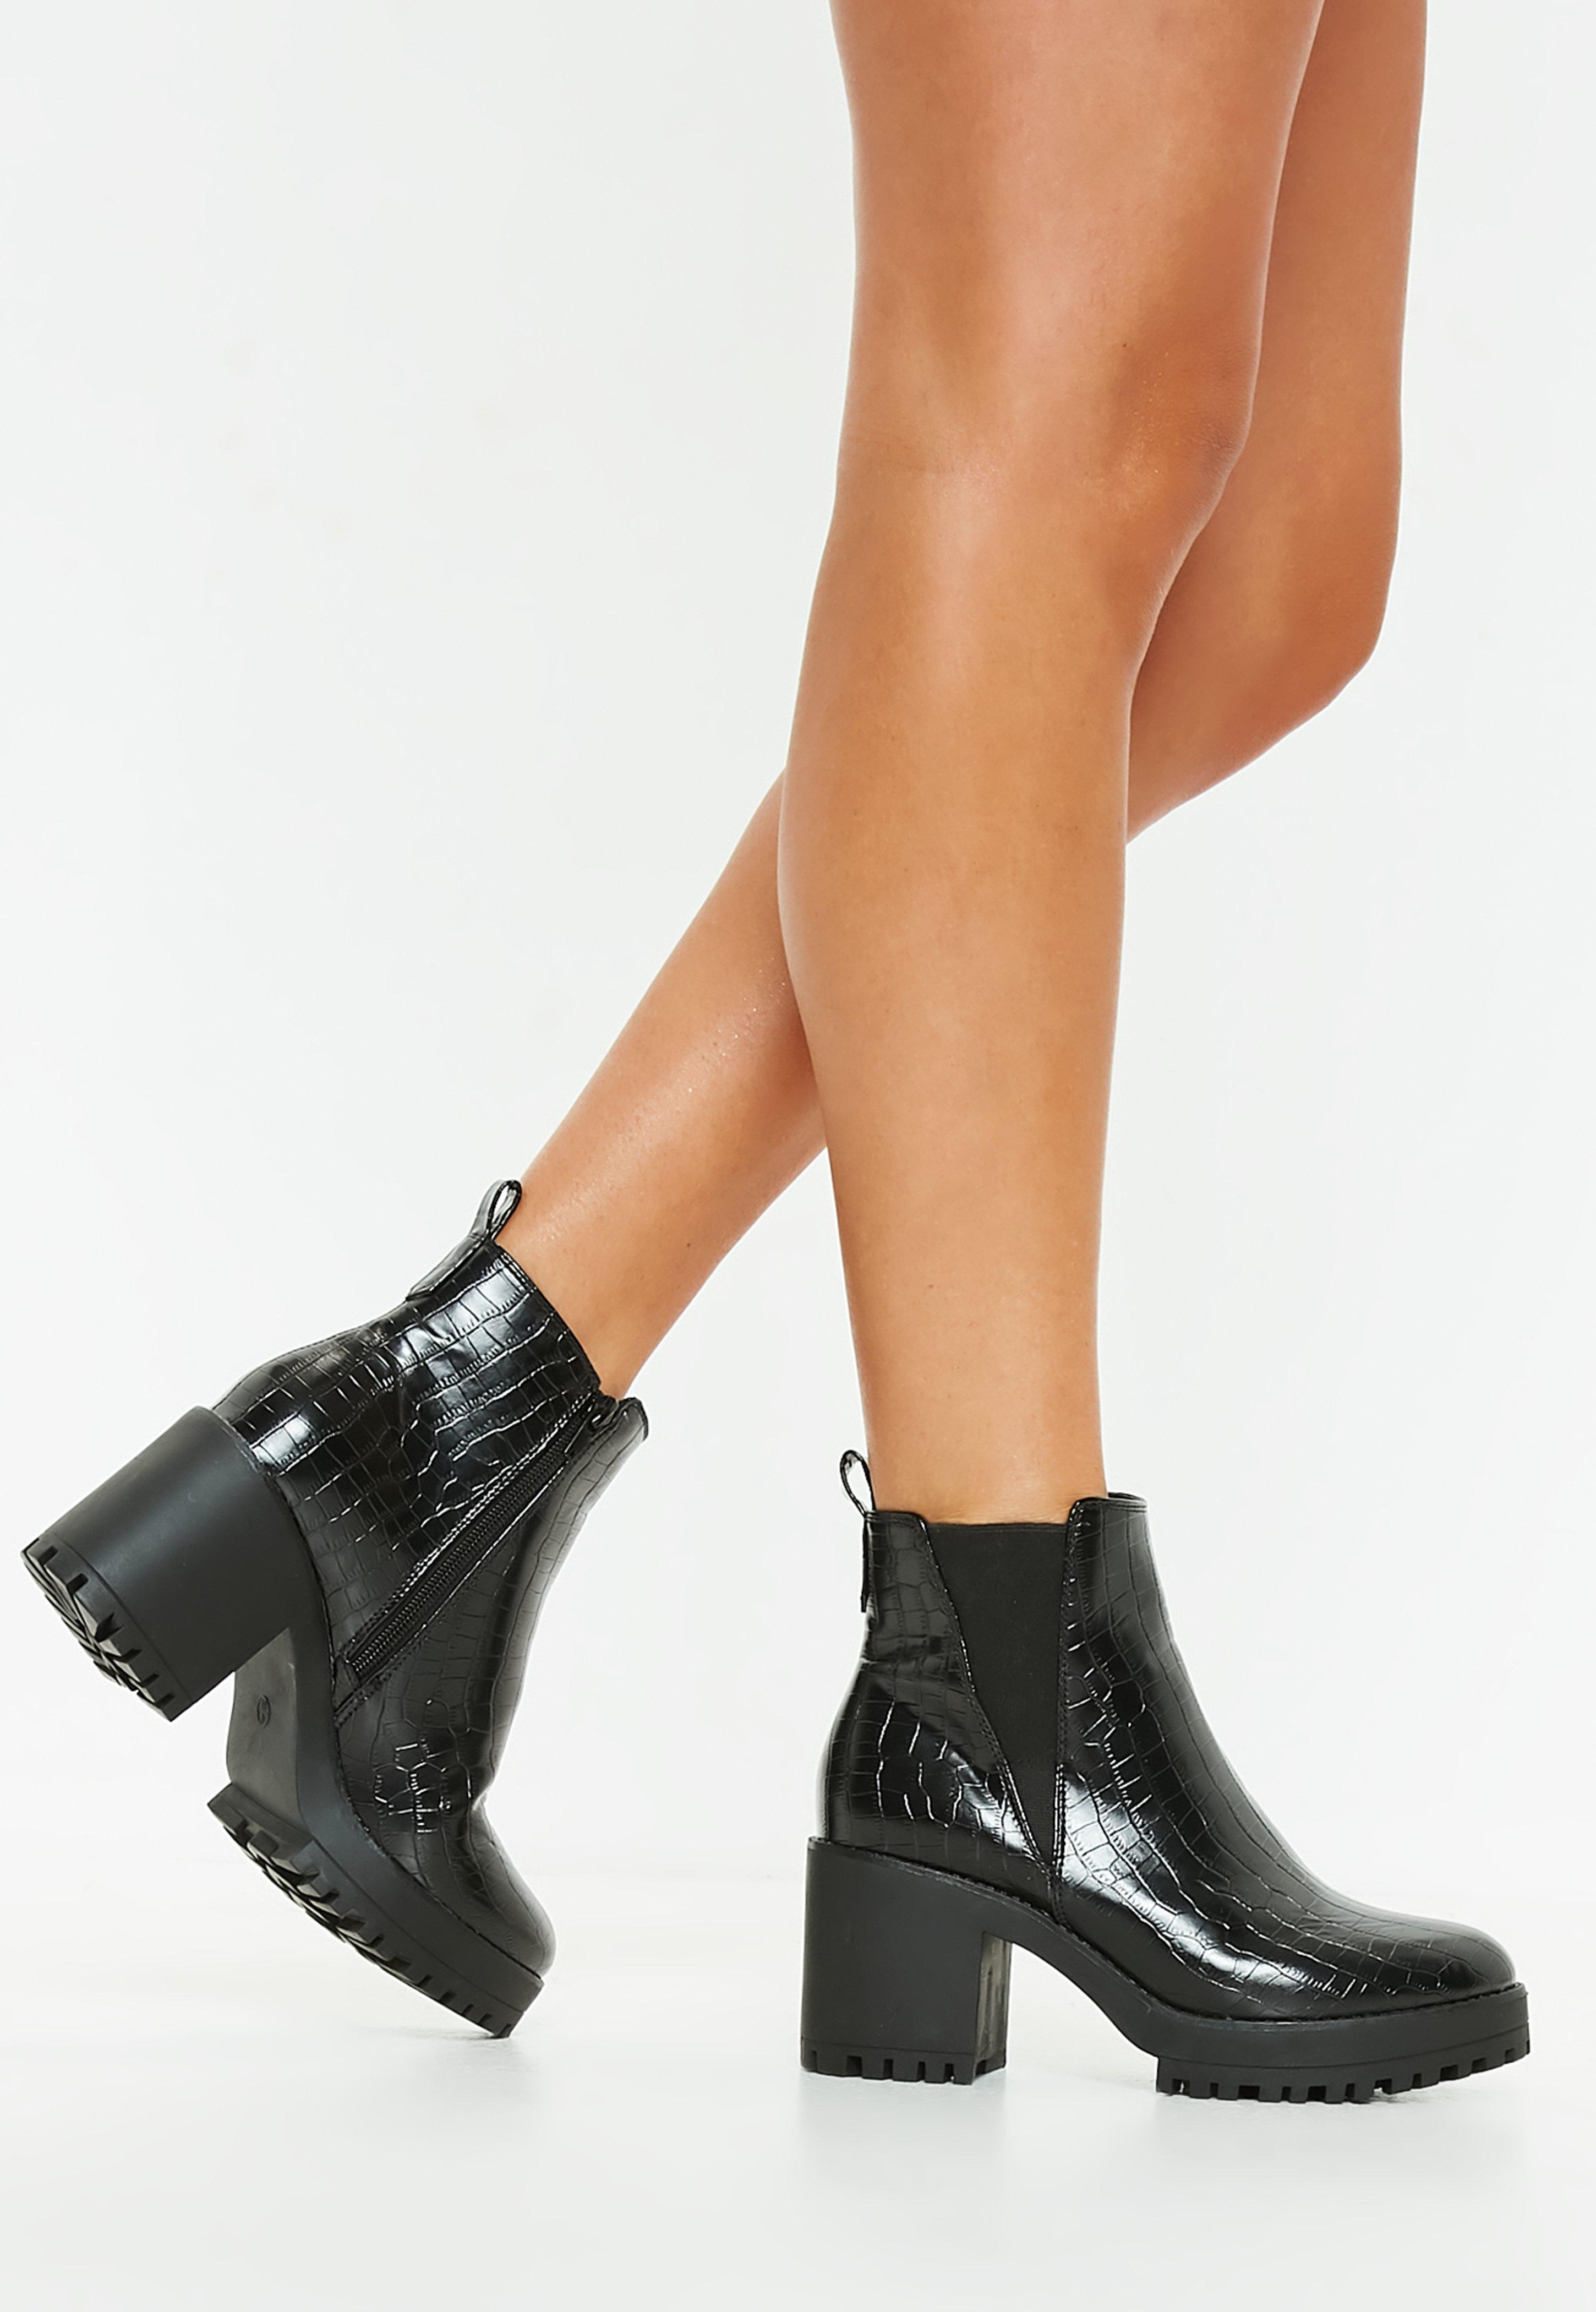 50ccc01dbf Ankle Boots | Women's Ankle Boots - Missguided